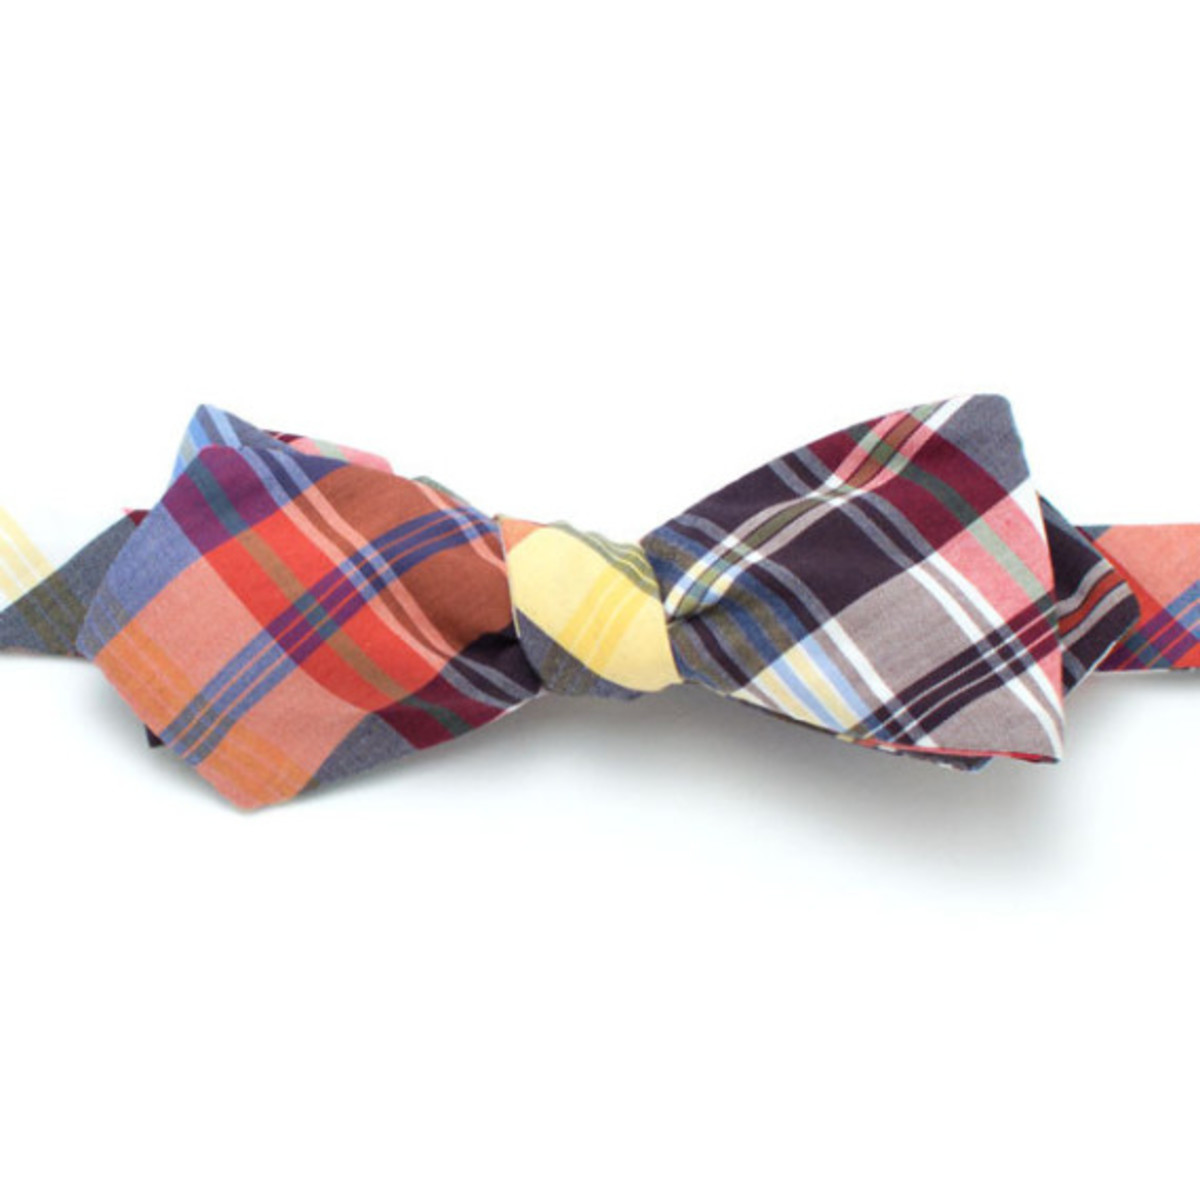 general-knot-and-co-portland-family-neckwear-collection-12